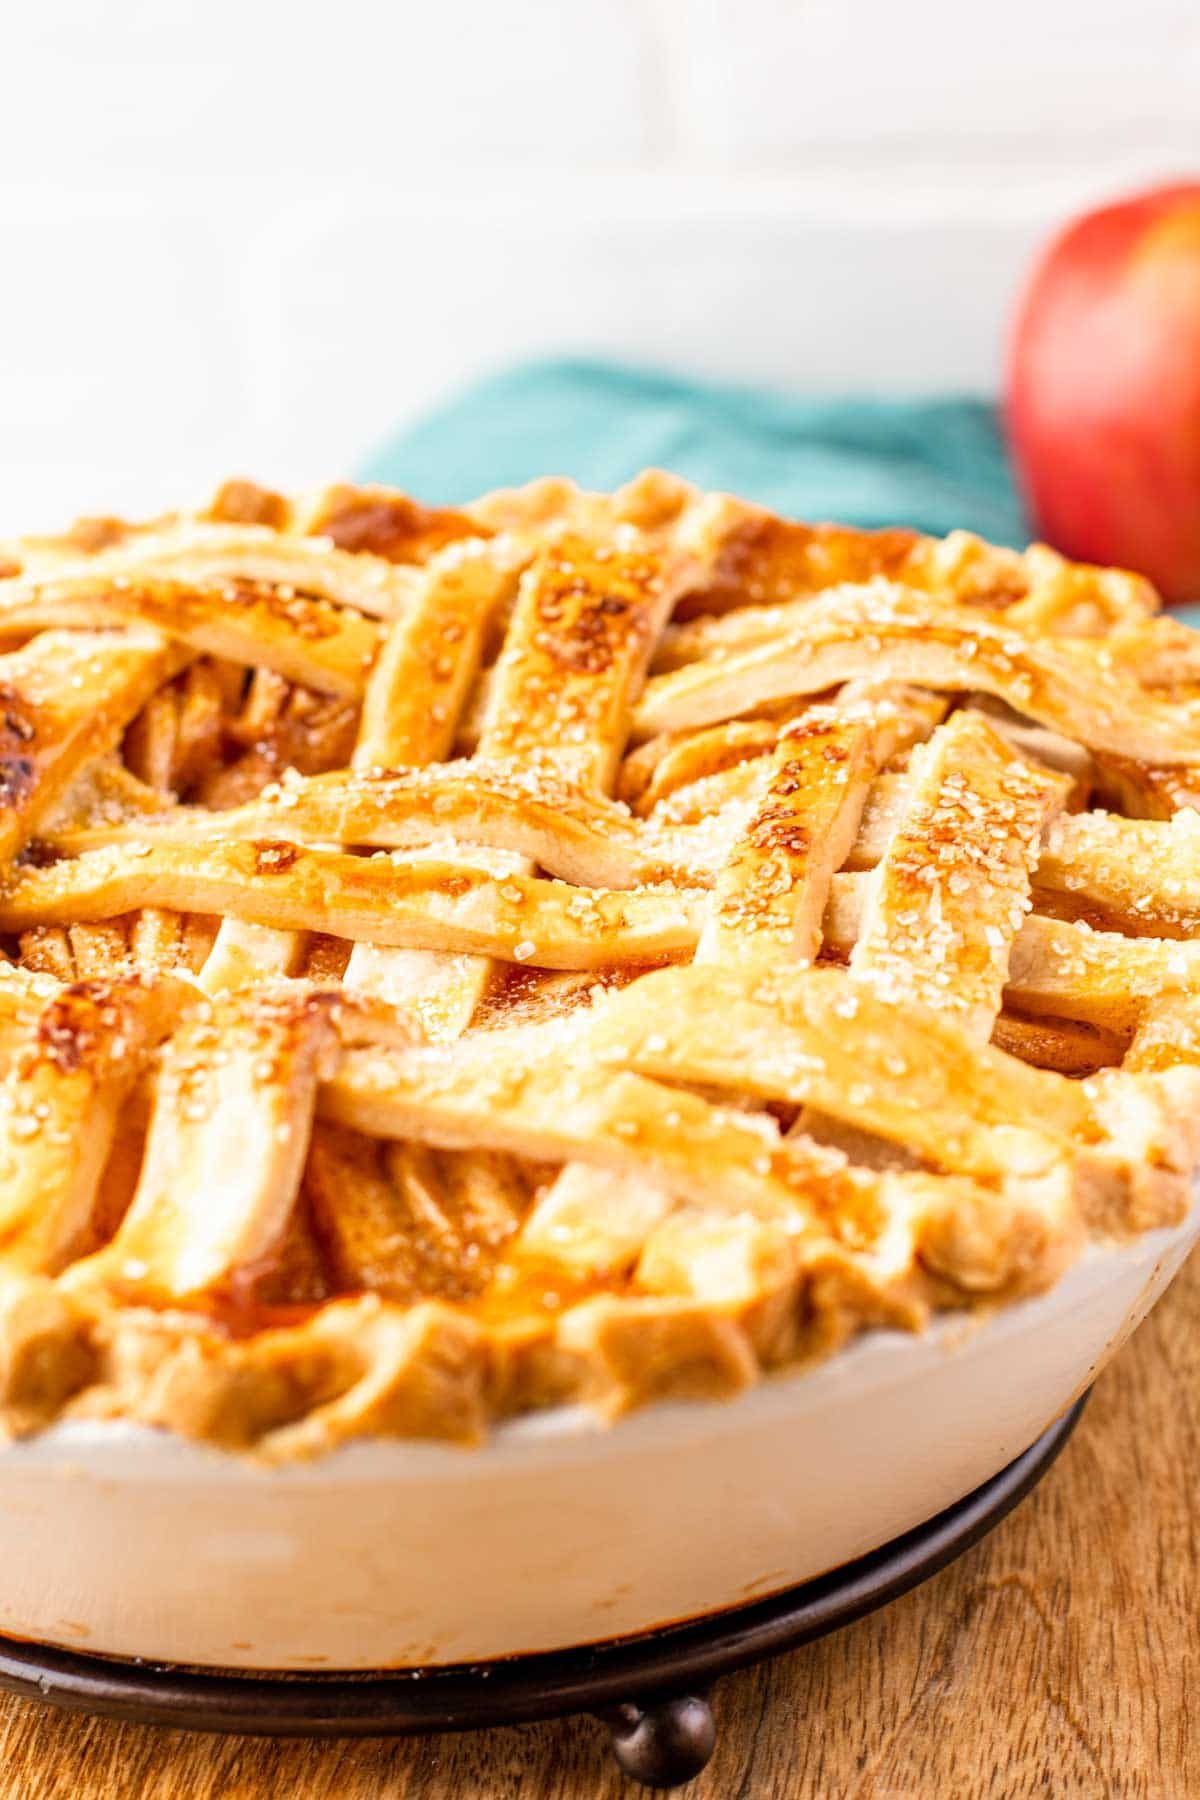 A pie with a basket weave flaky pie crust on top